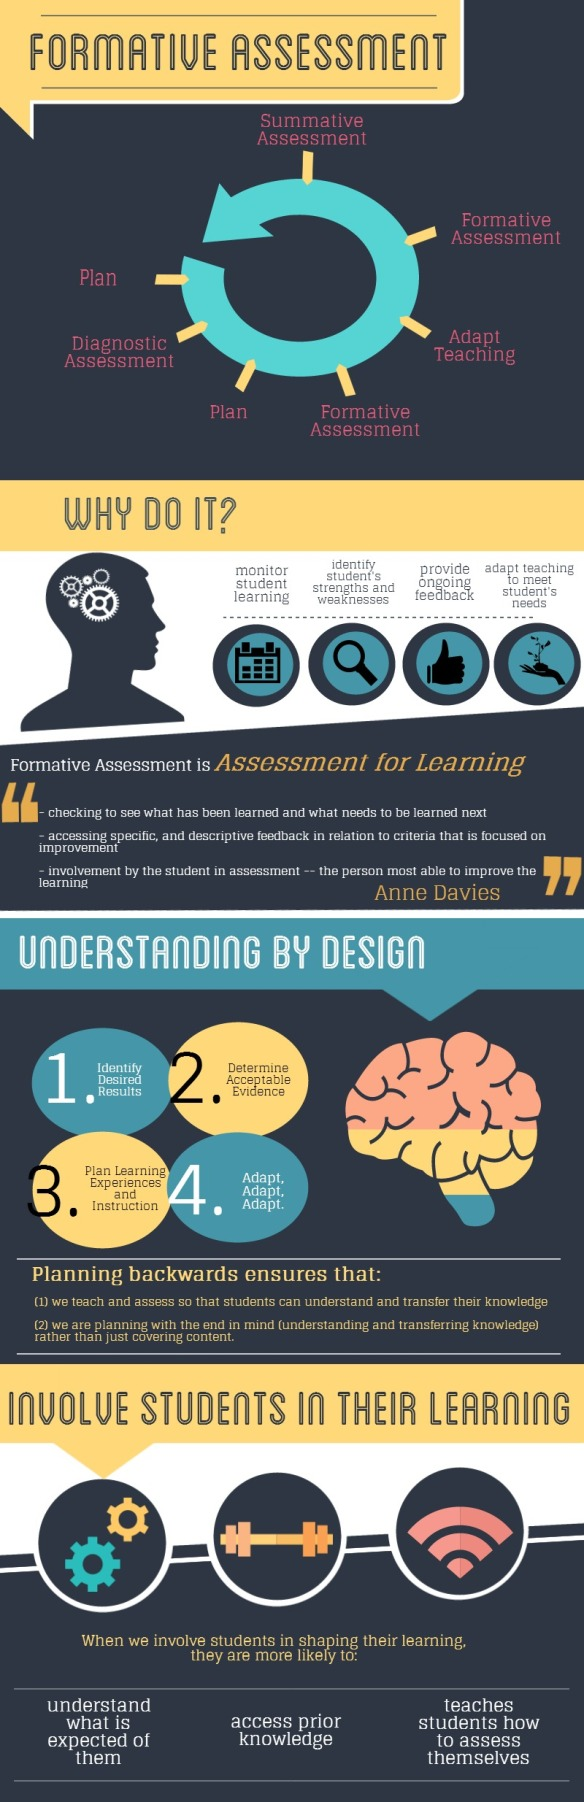 Formative Assessment InfoGraphic - Koskie